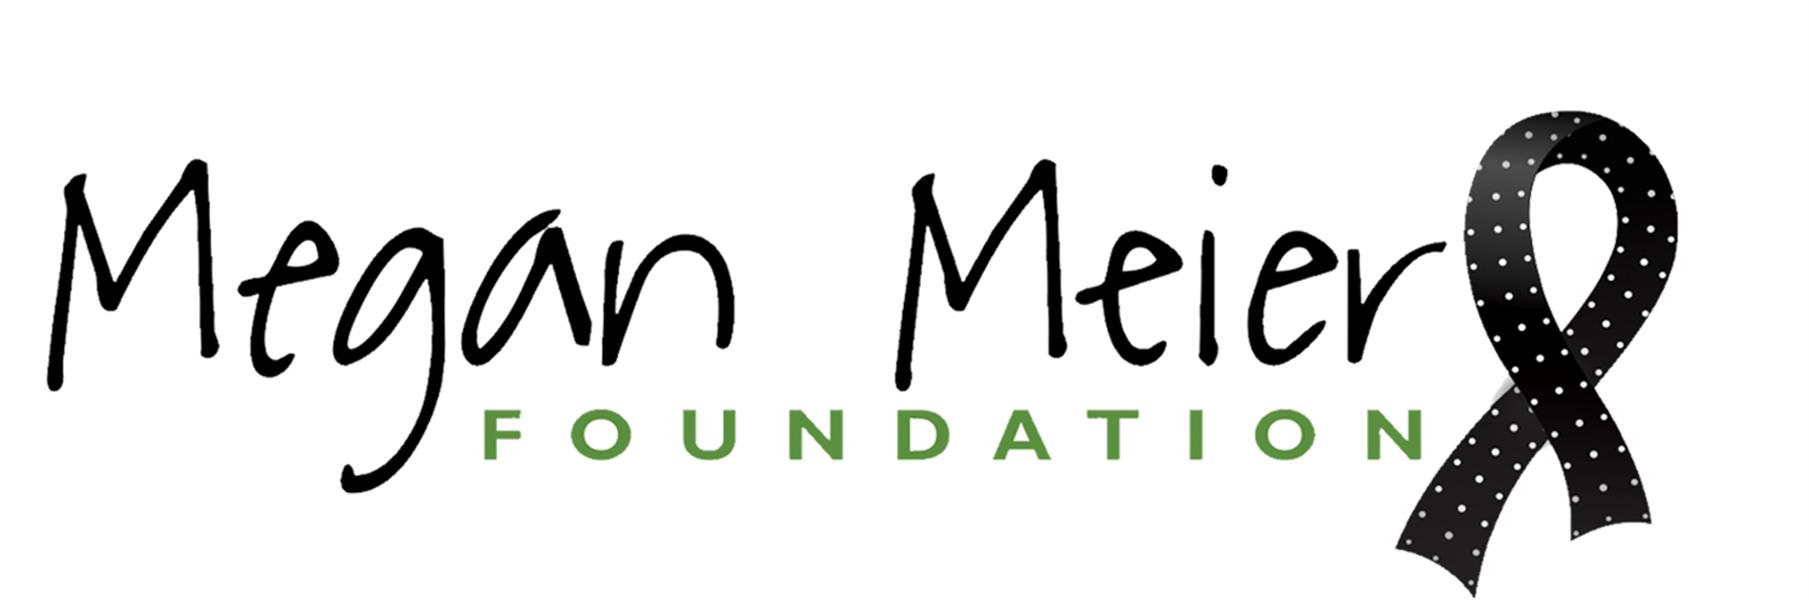 Megan Meier Foundation